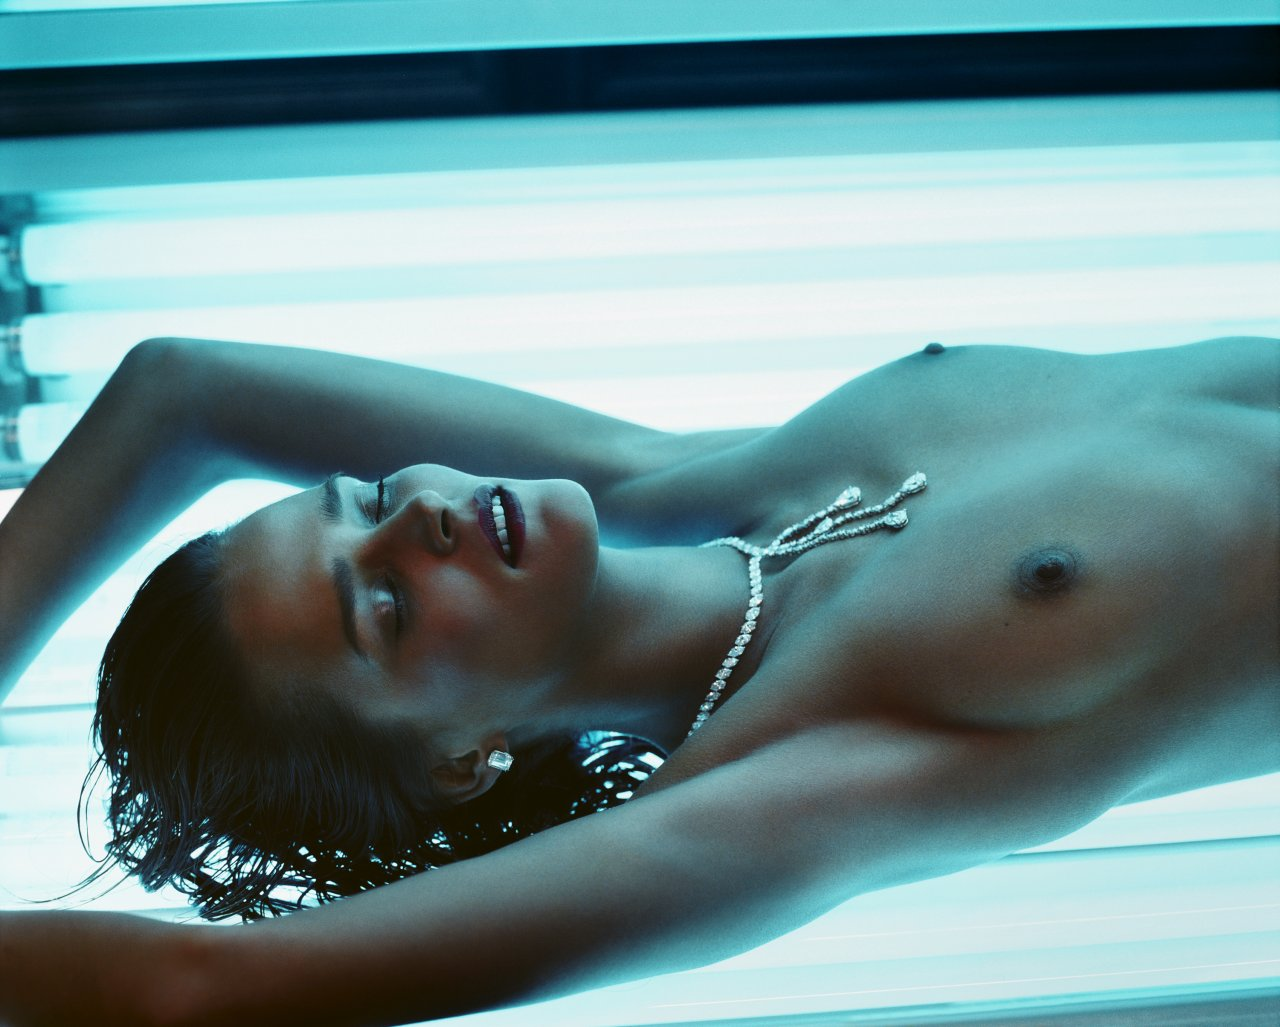 Nude tanning bed photo well